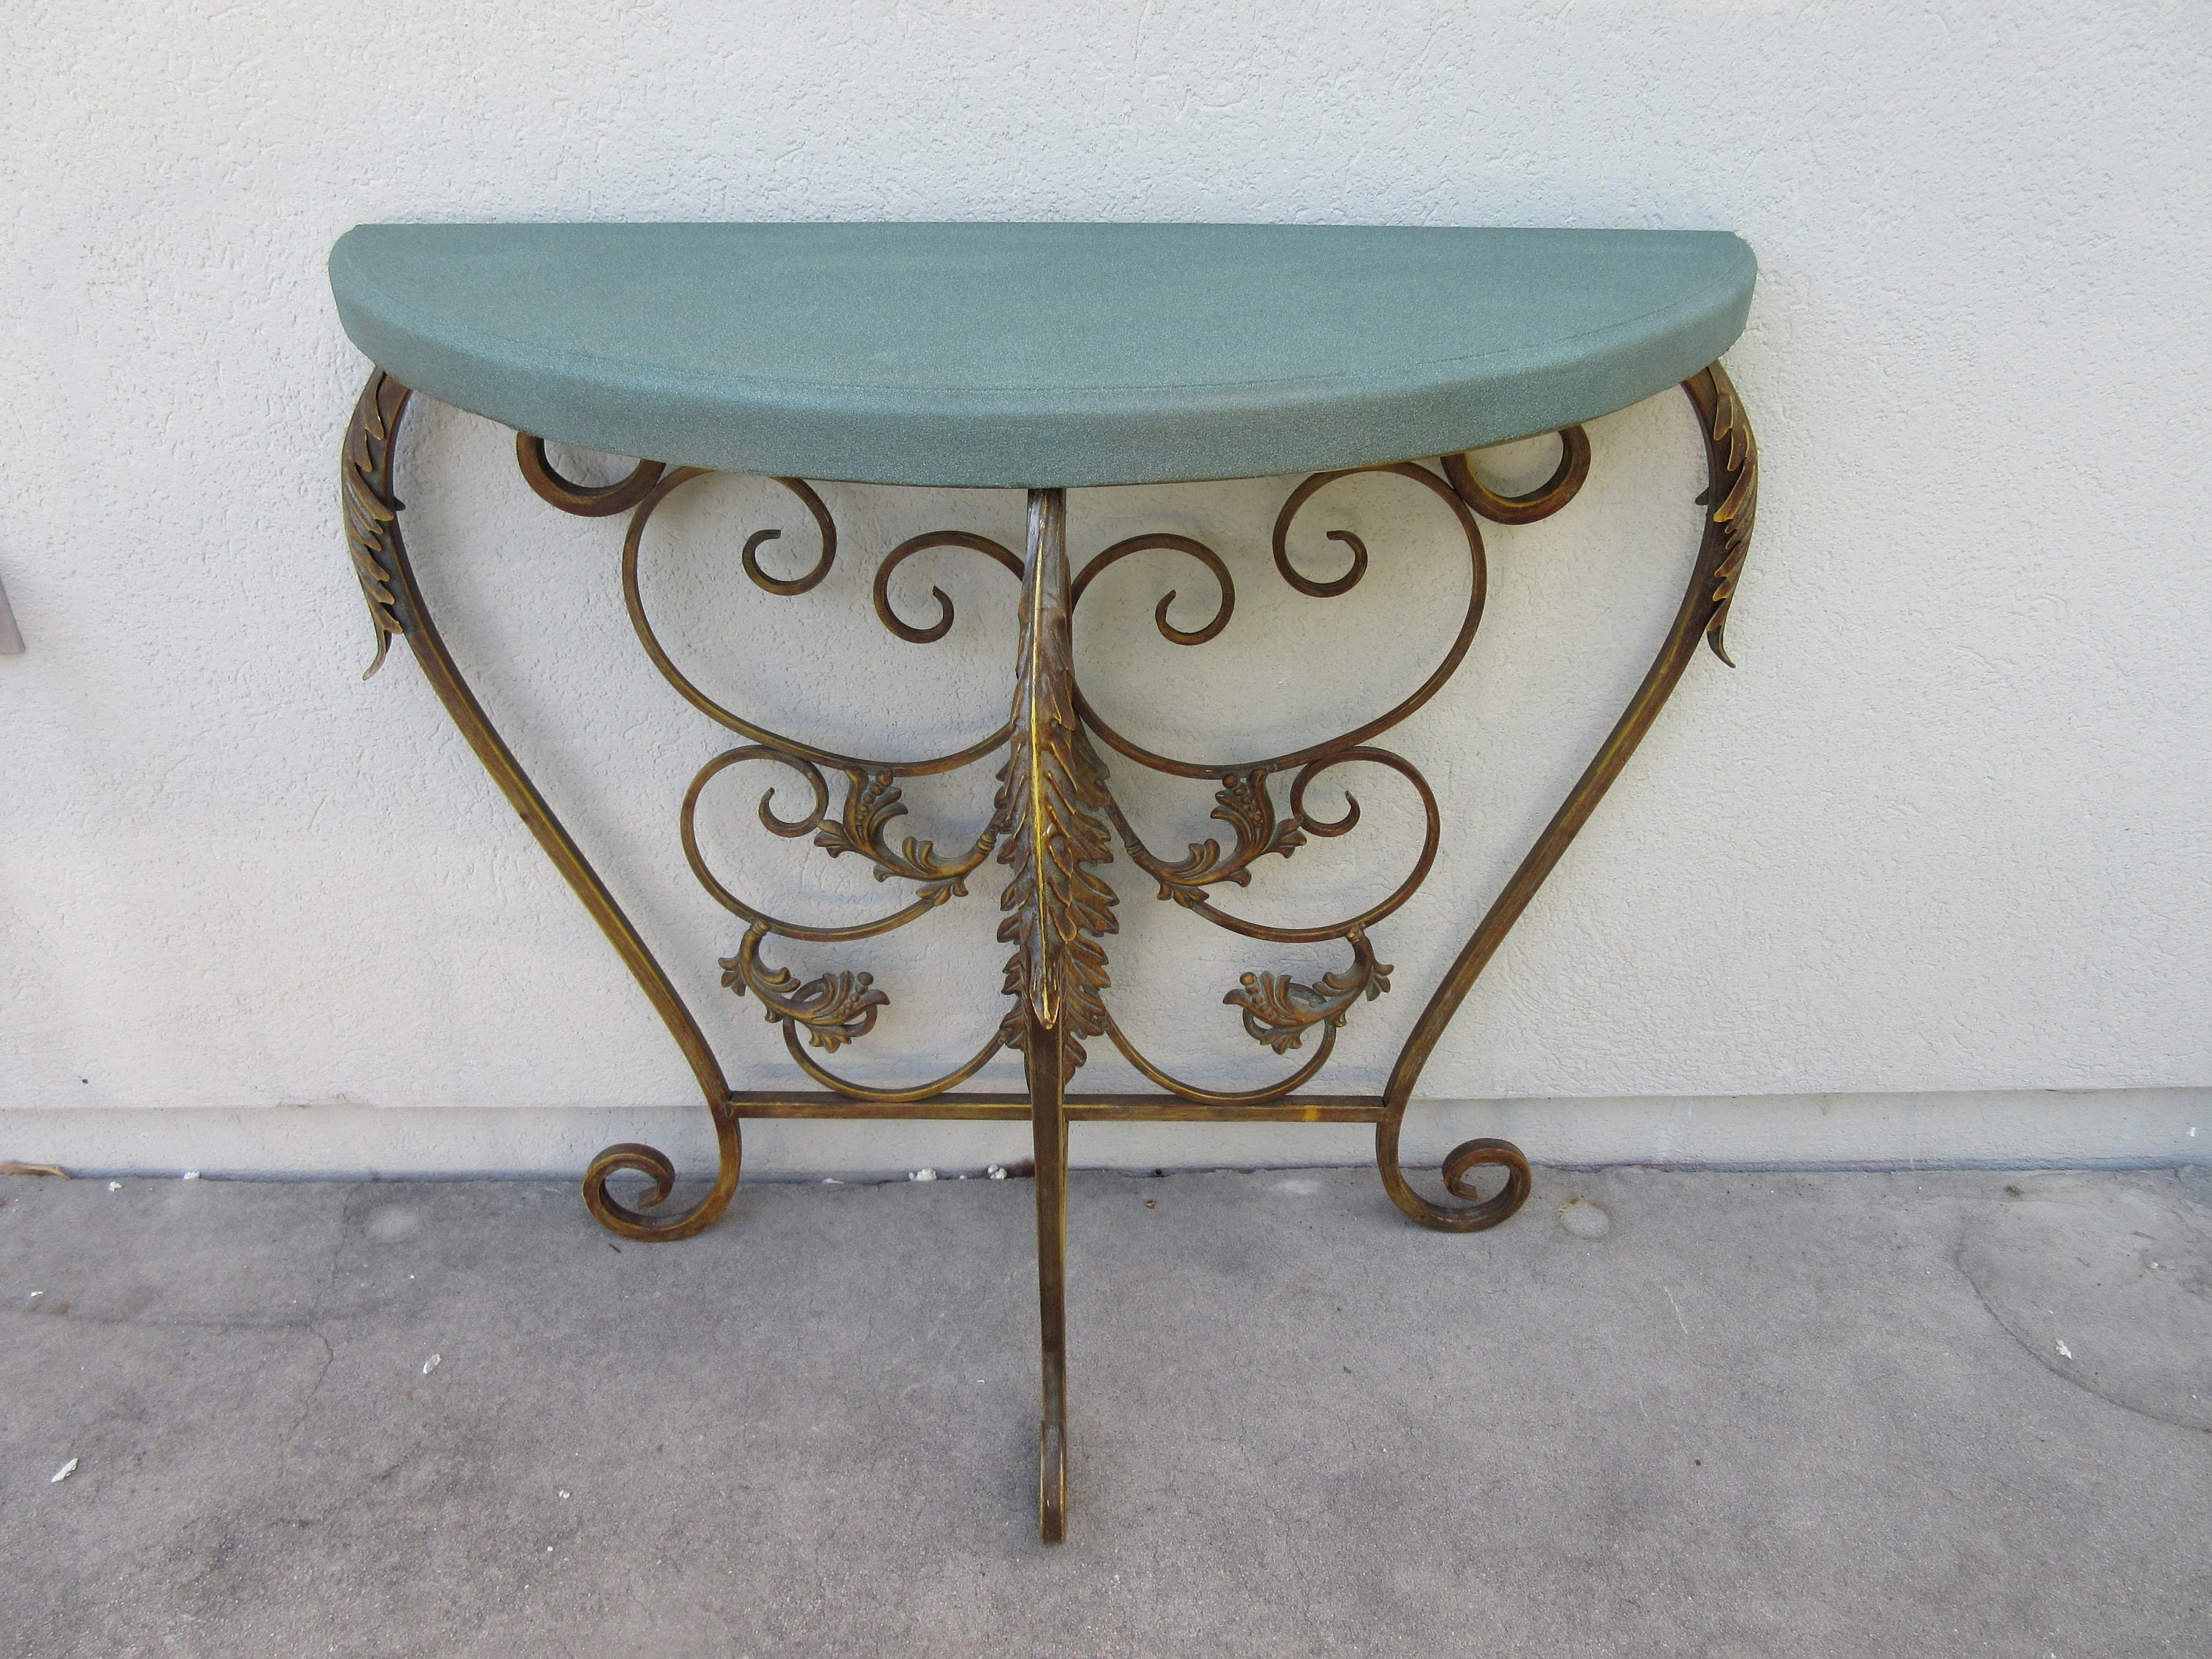 Vintage Bronze Gold Green Half Circle Detailed Fancy Leaf Design Side Table Decorative Hall Foyer Three Leg Tripod Round Small Ornate Stand